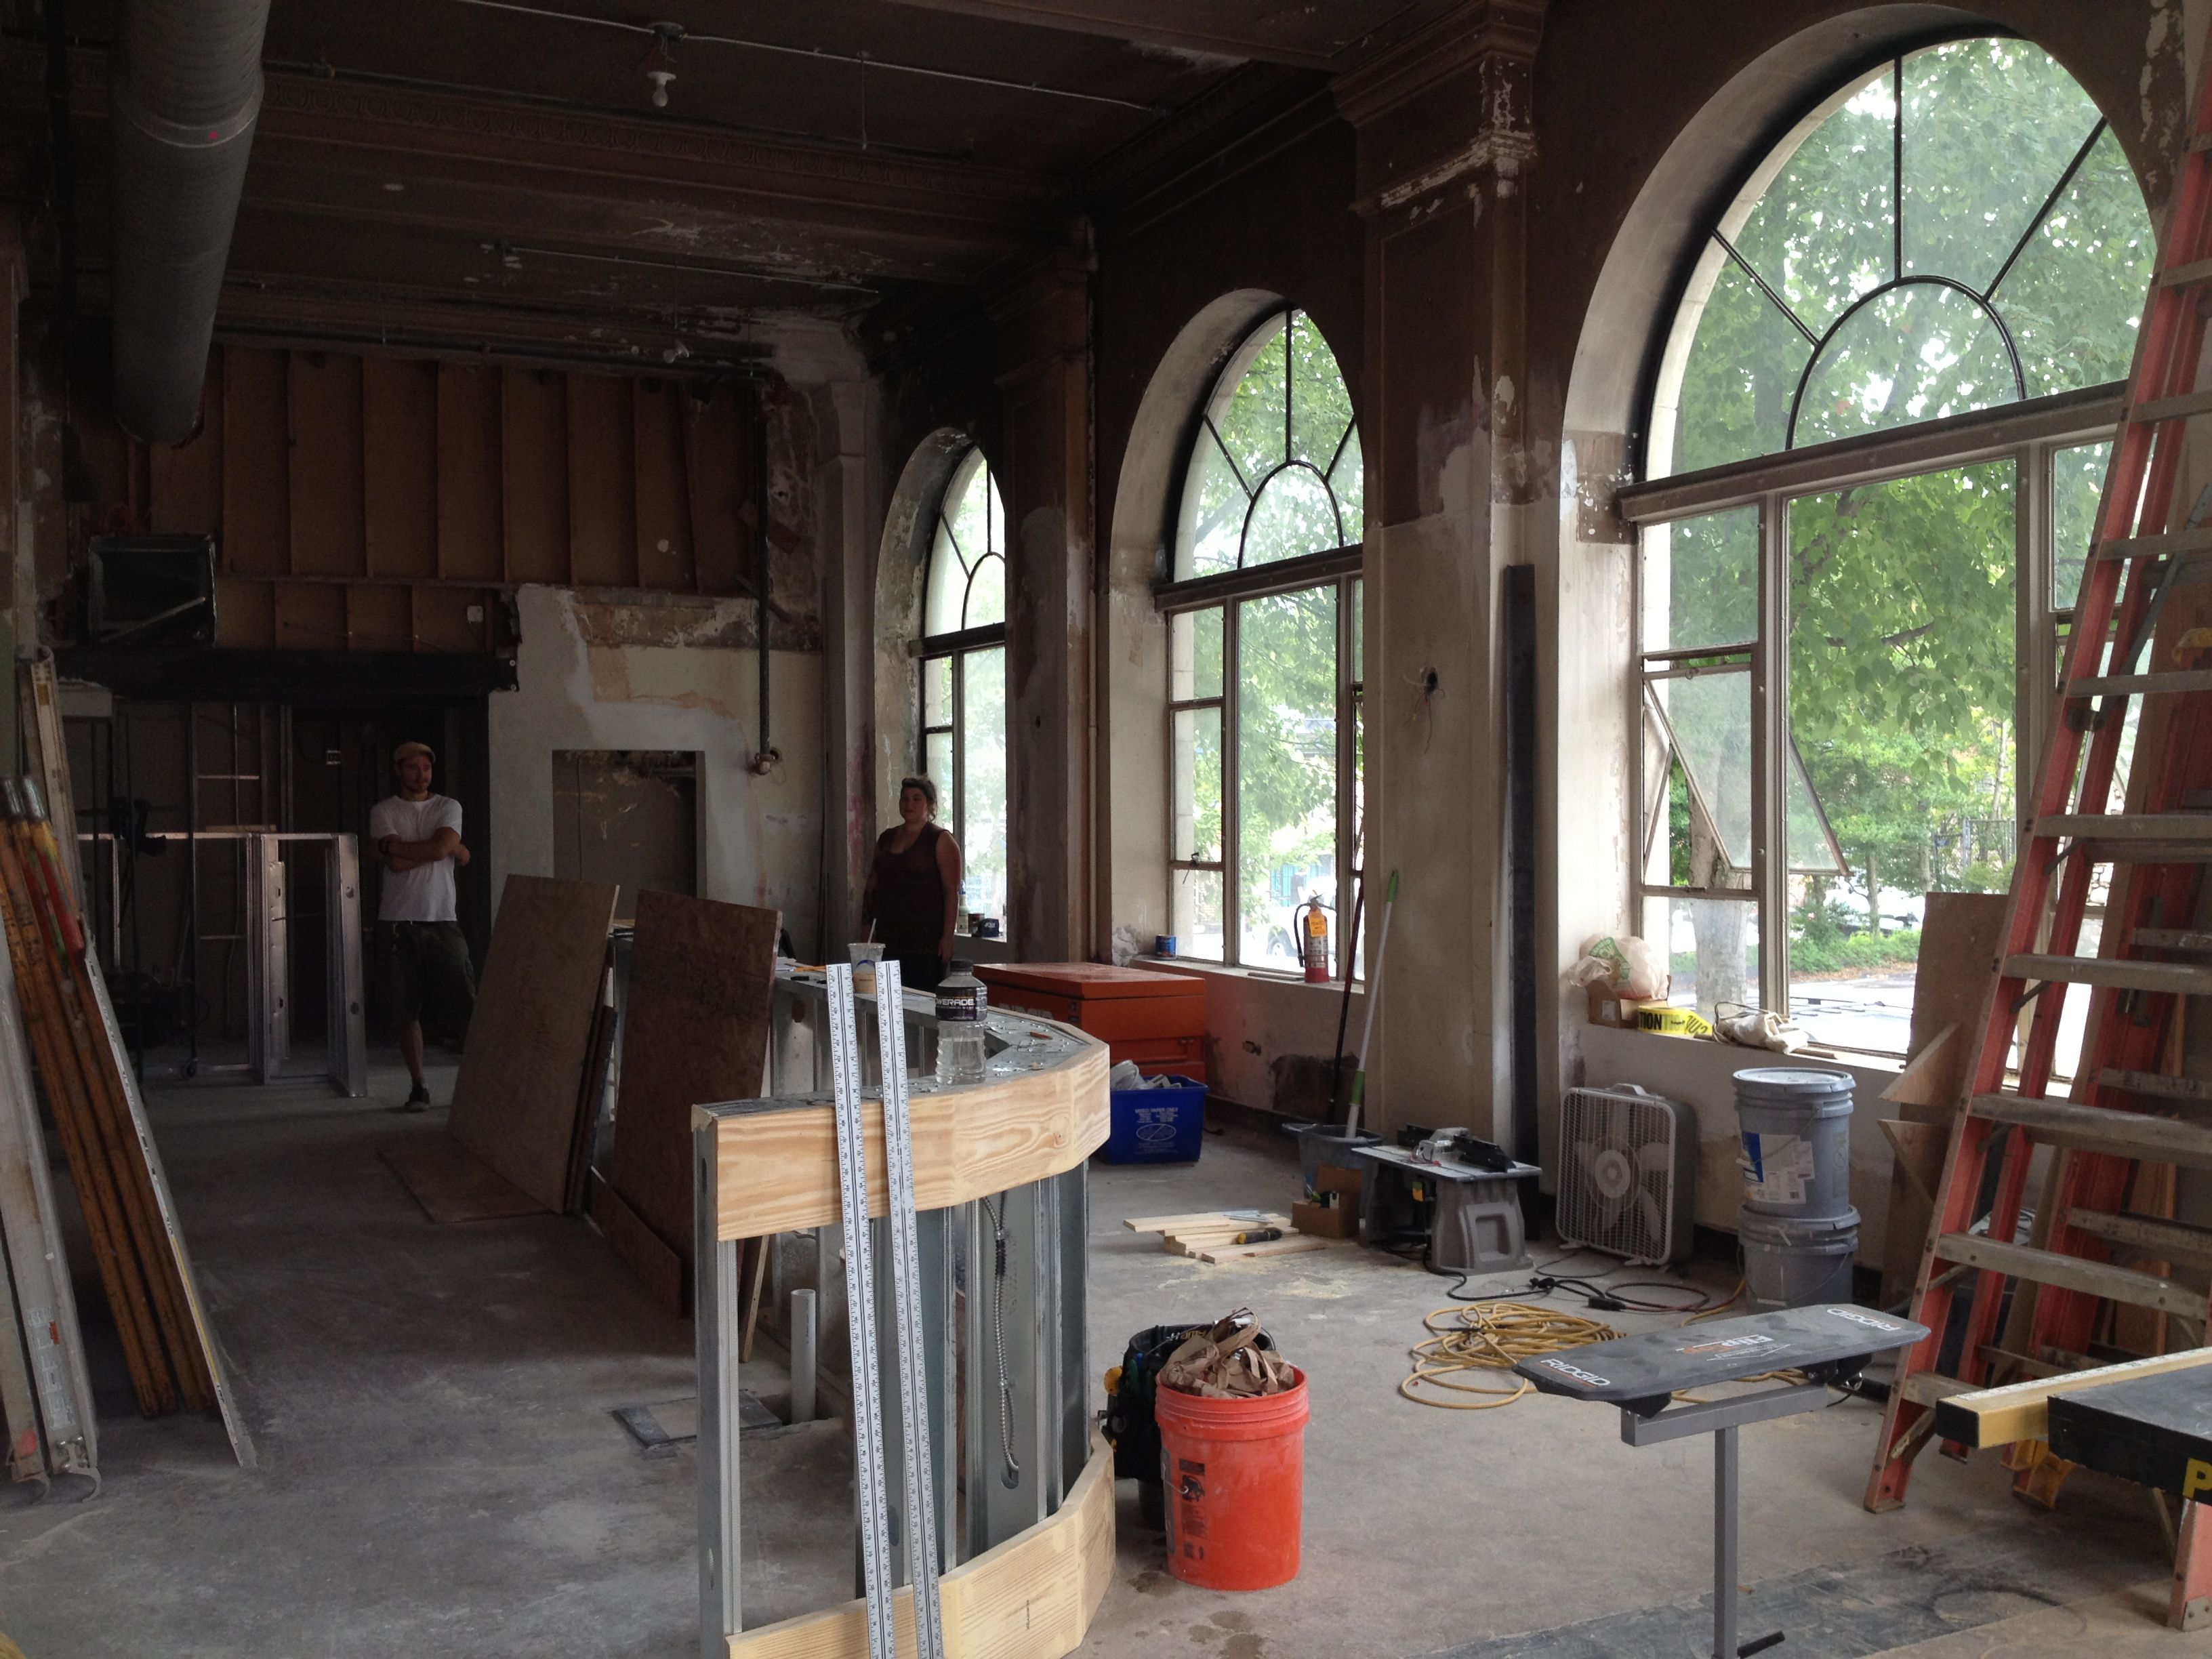 PHOTOS Sneak preview of Sovereign Remedies bar in downtown Asheville